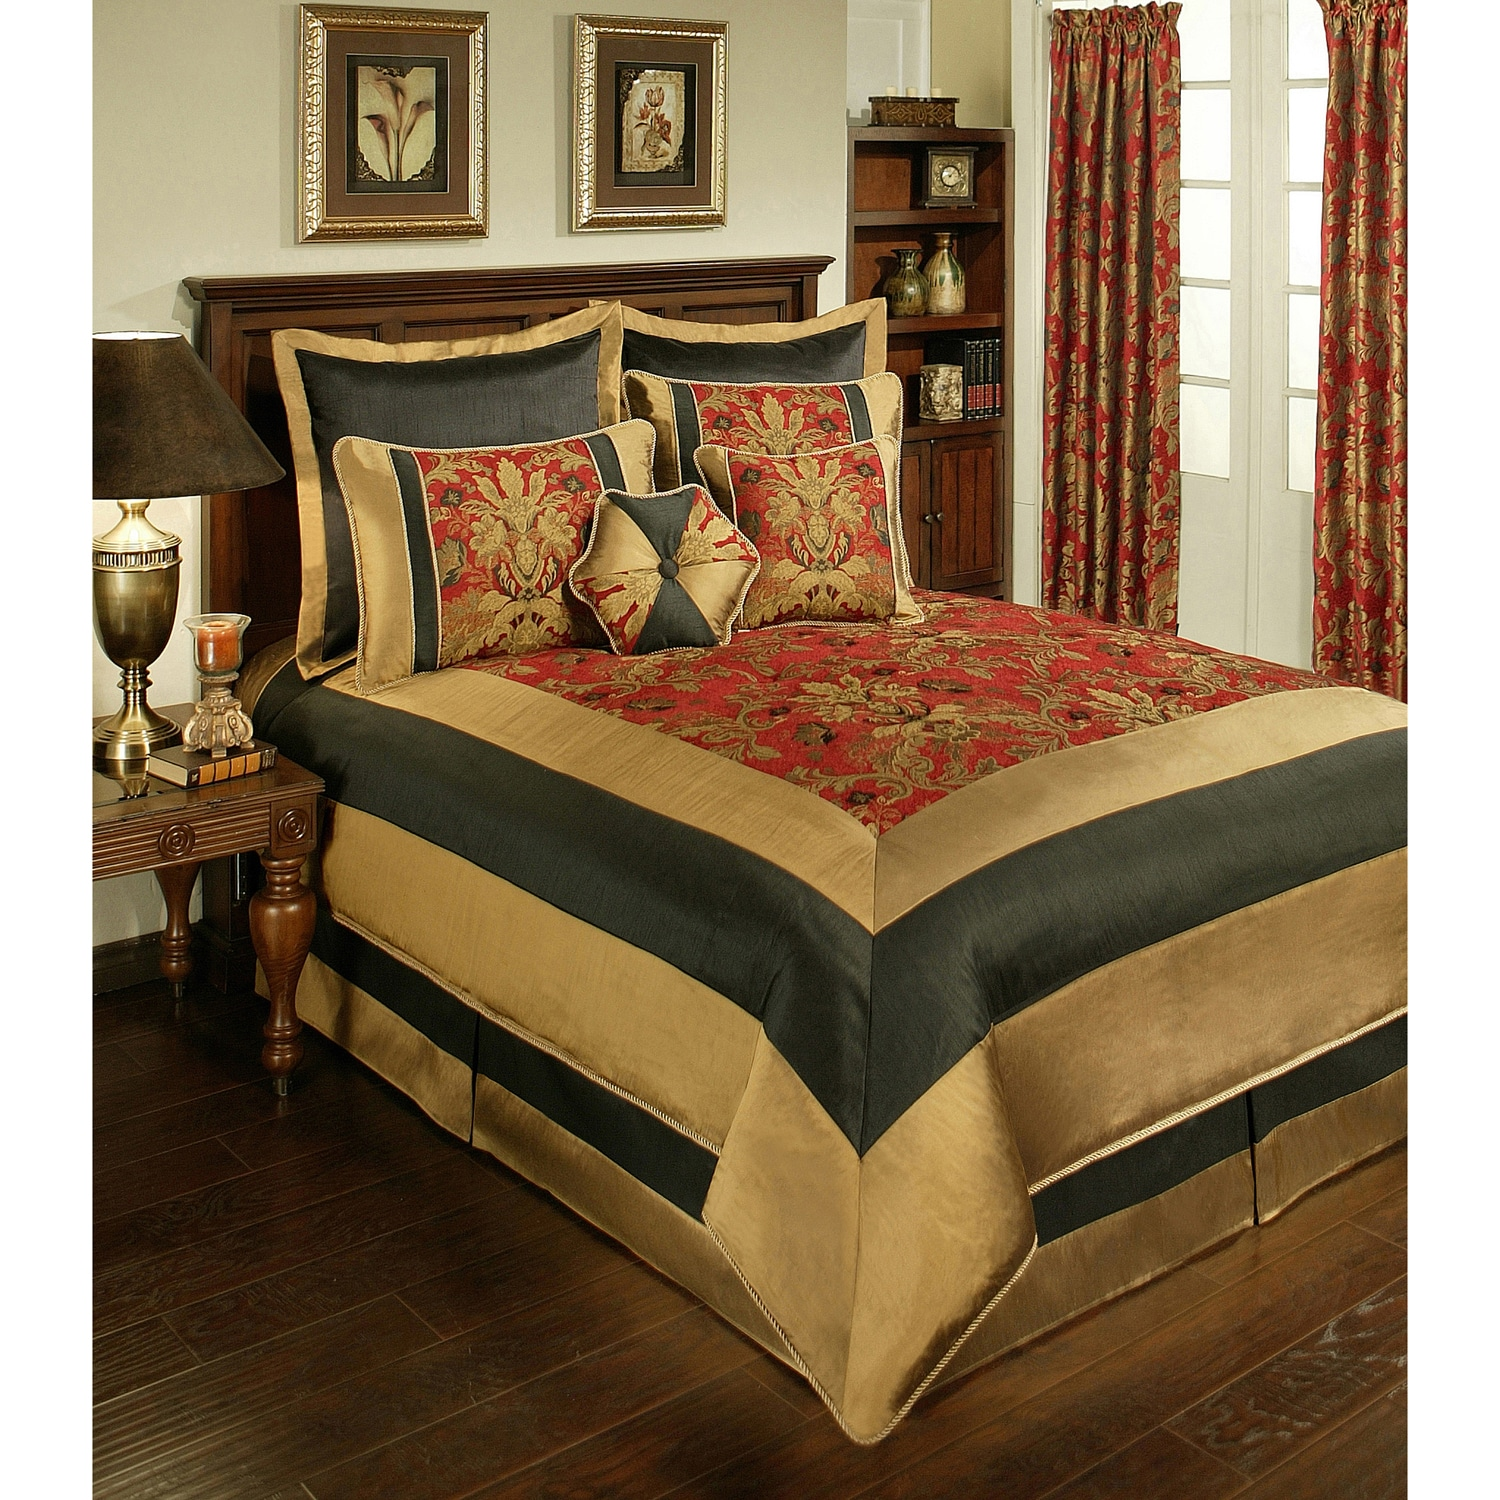 8 Piece Queen Red Sherry Kline Synergy Red Comforter Set Home Kitchen Comforter Sets